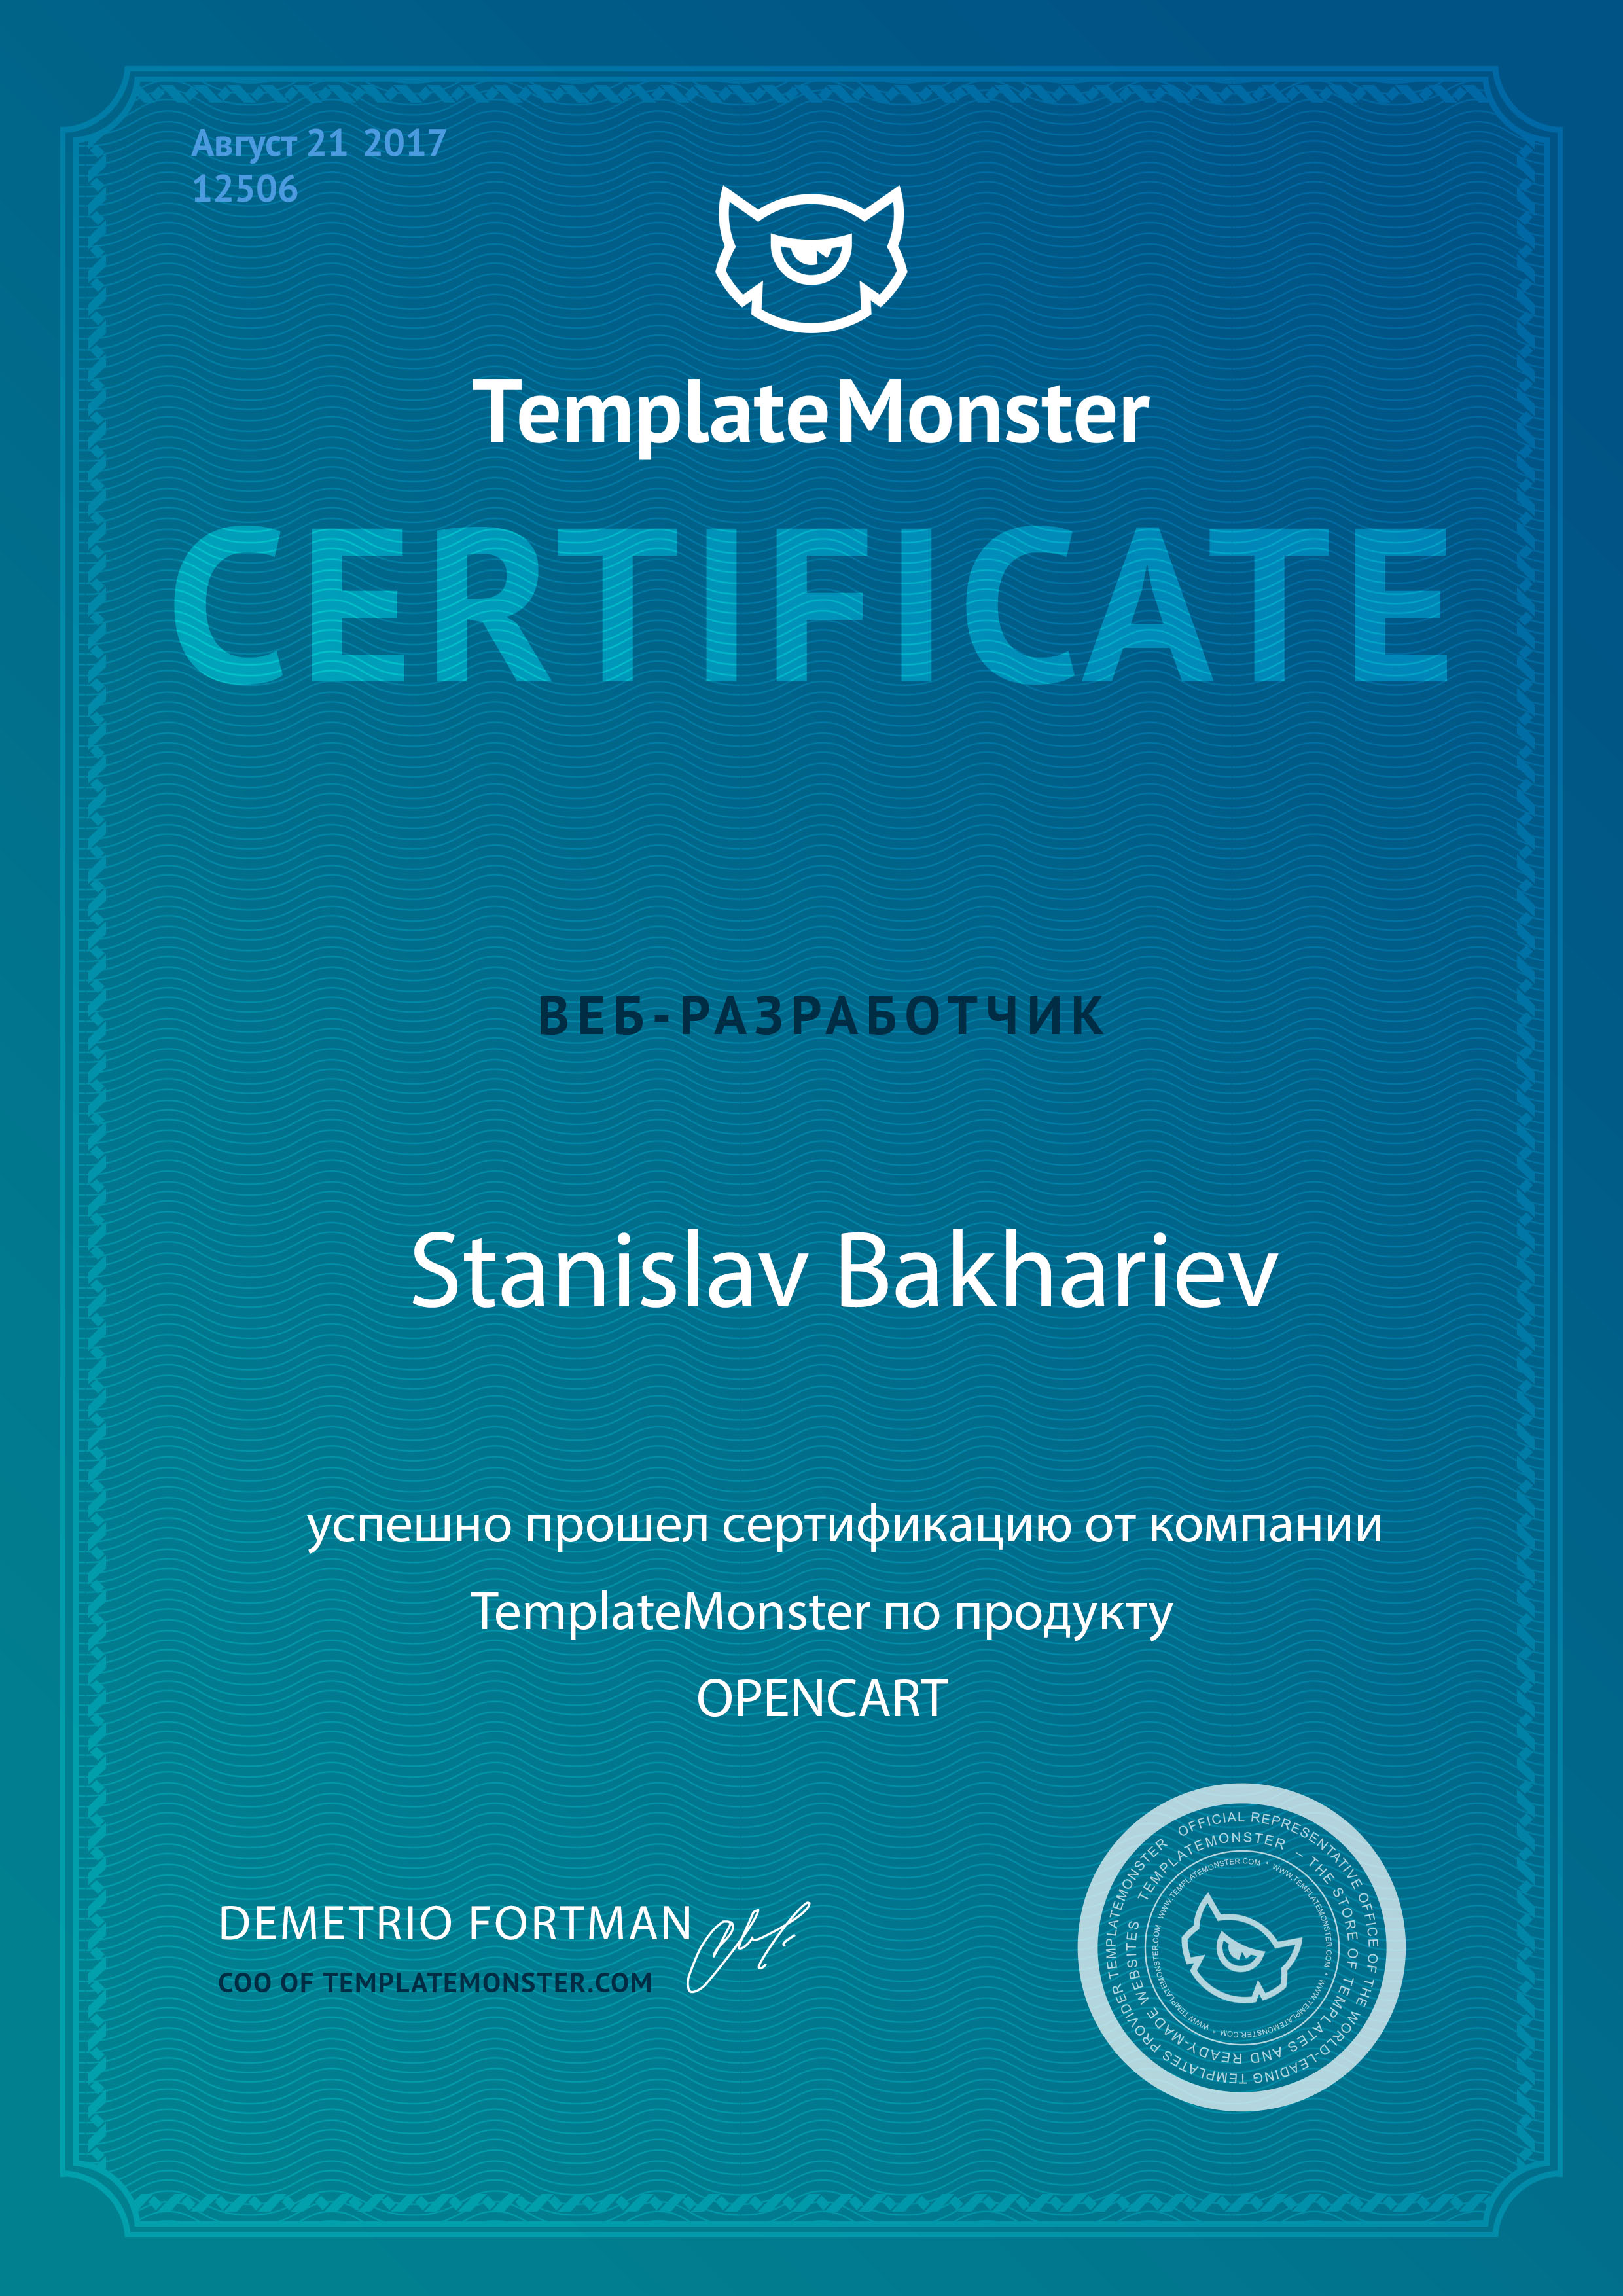 Сертификация компании в TemplateMonster